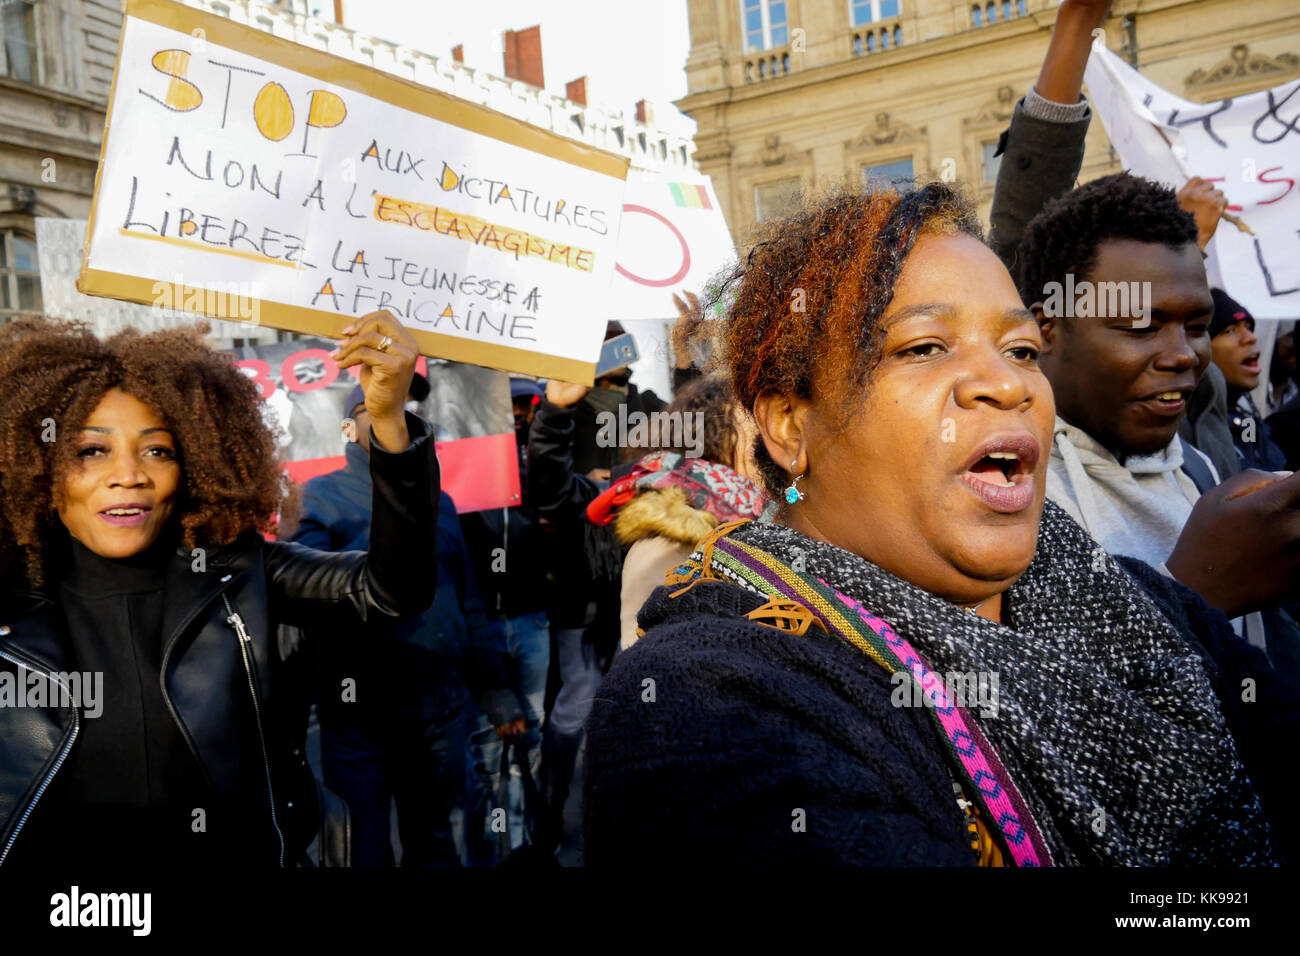 African diaspora protest against slavery rebirth in Lybia, Lyon, France - Stock Image